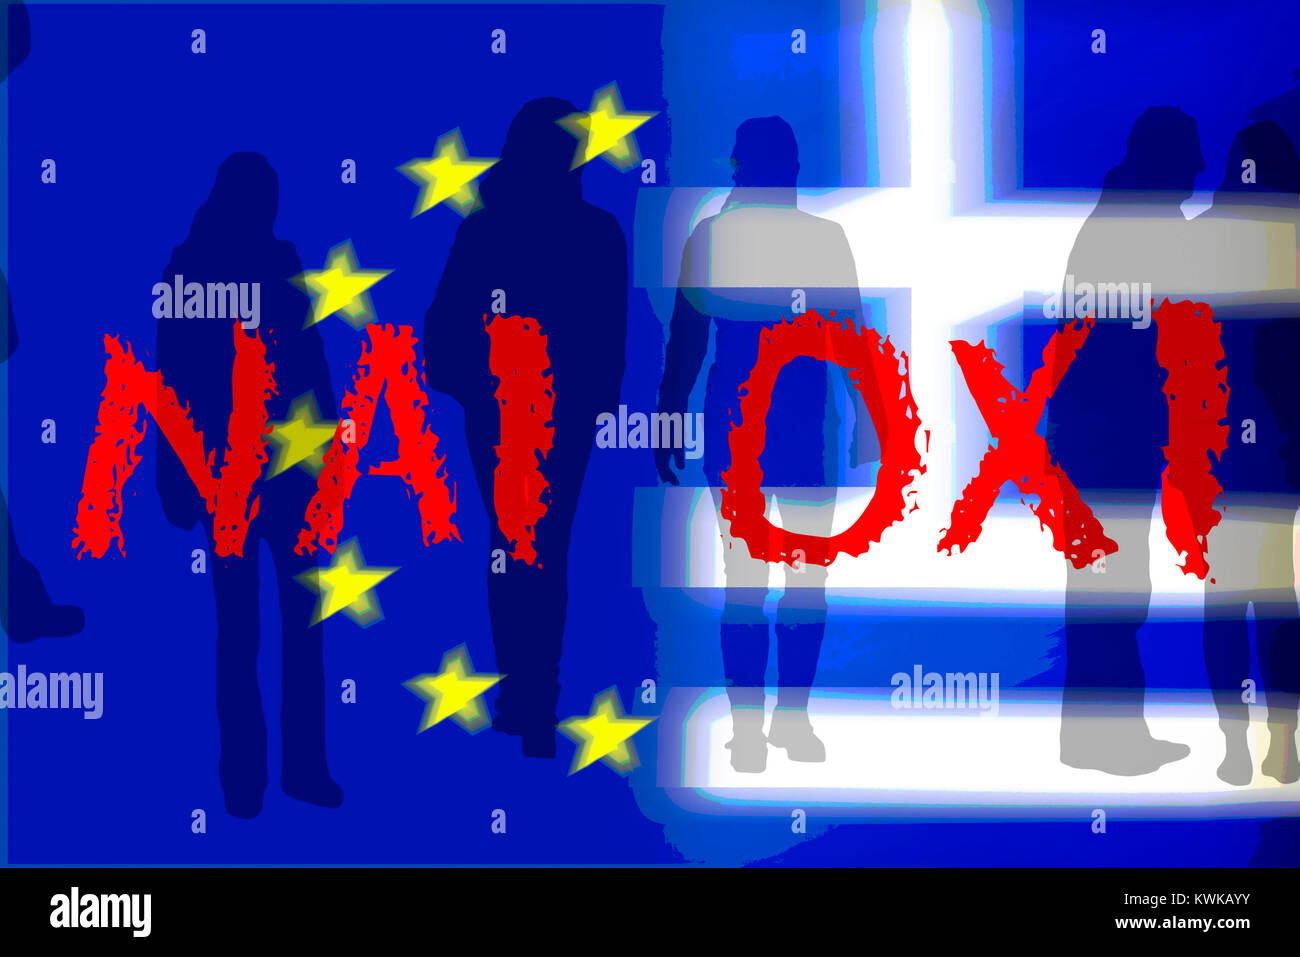 Greece and EU flag with the words nai and oxi and silhouettes of people, referendum in Greece, Griechenland- und Stock Photo